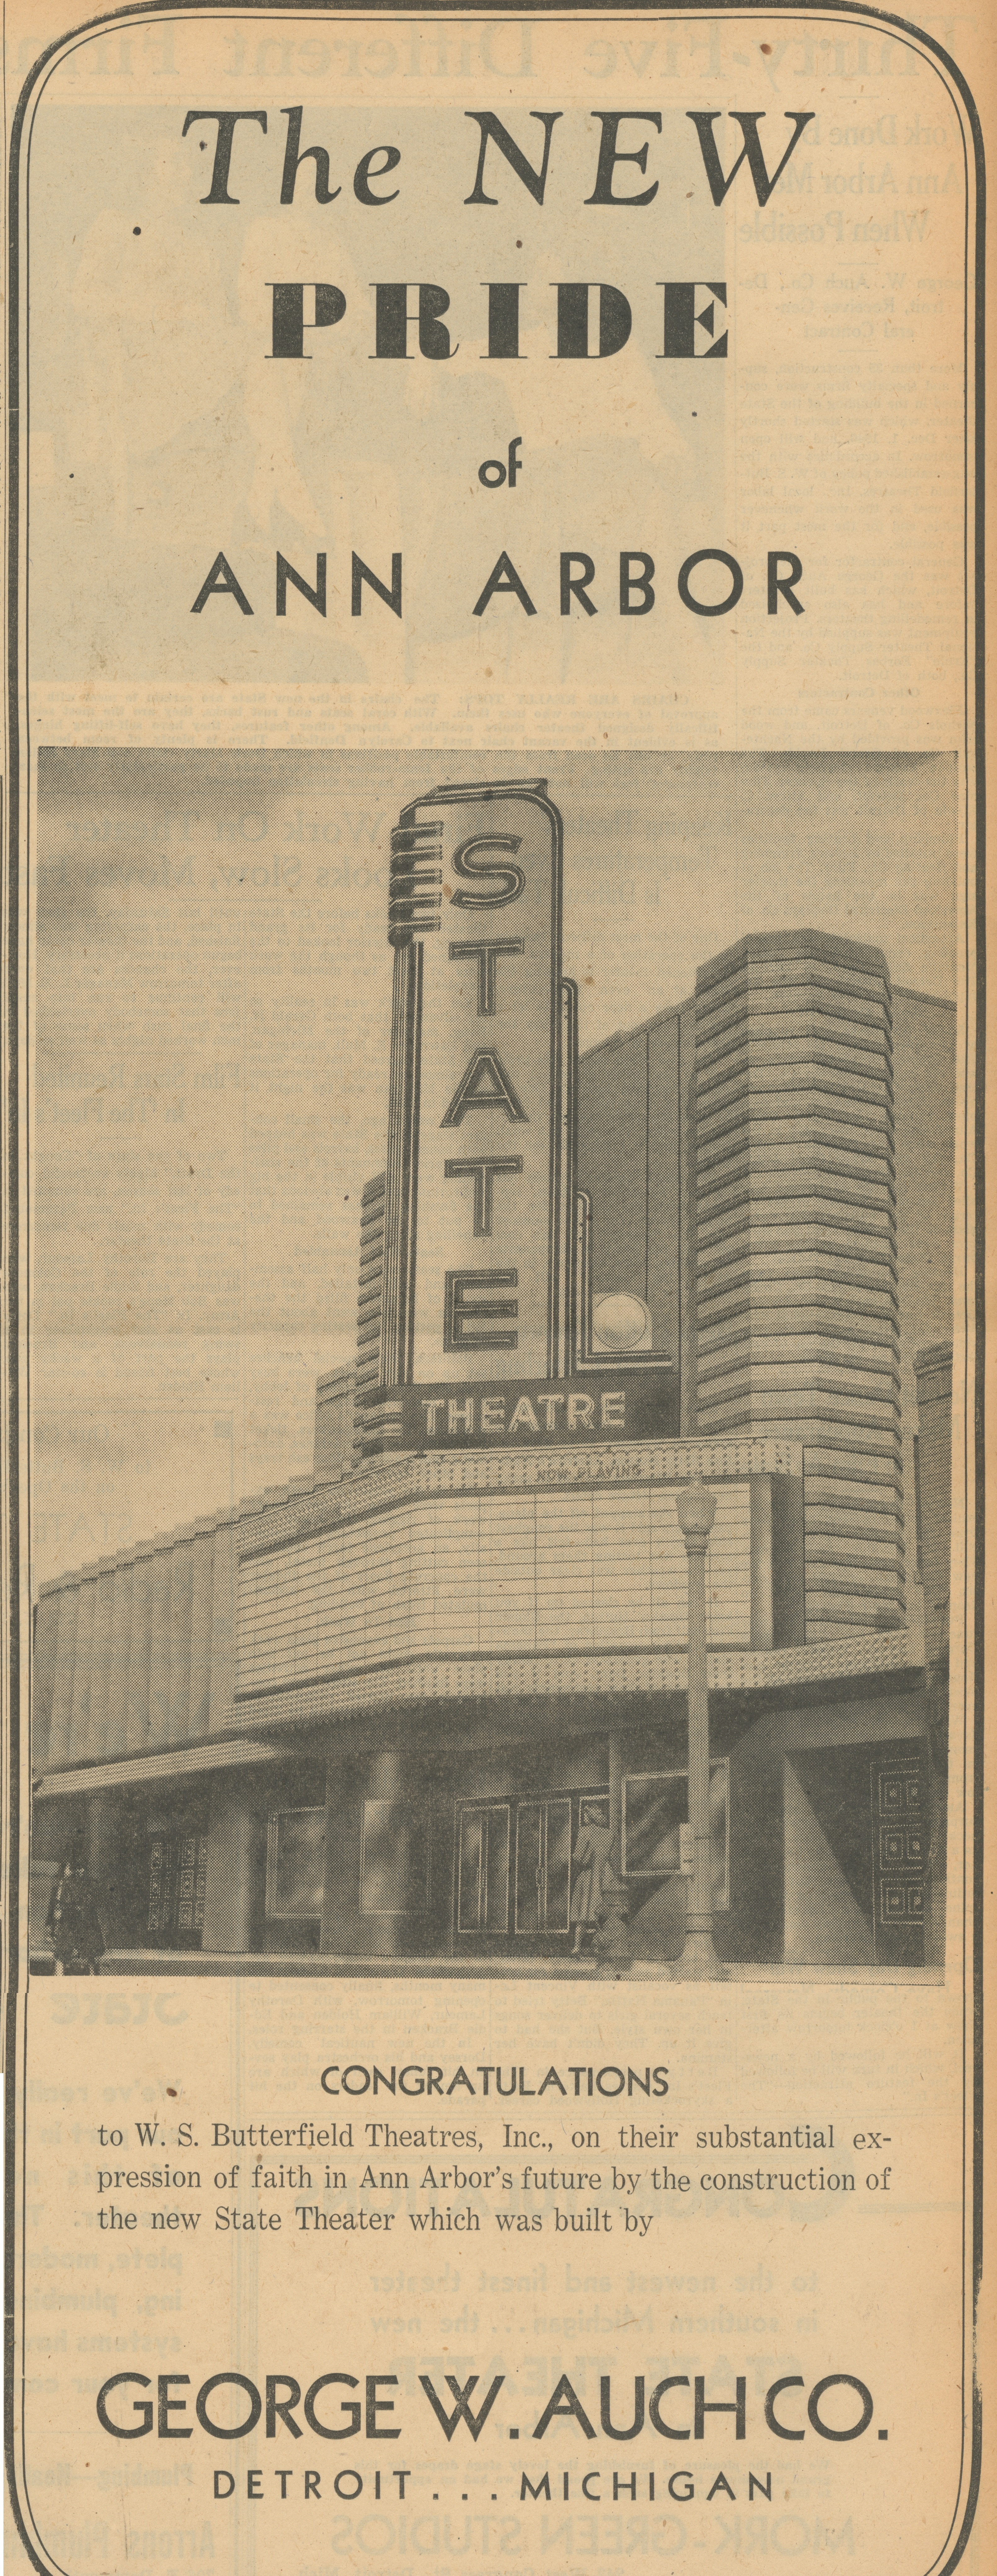 The New Pride of Ann Arbor - State Theater - Congratulations image